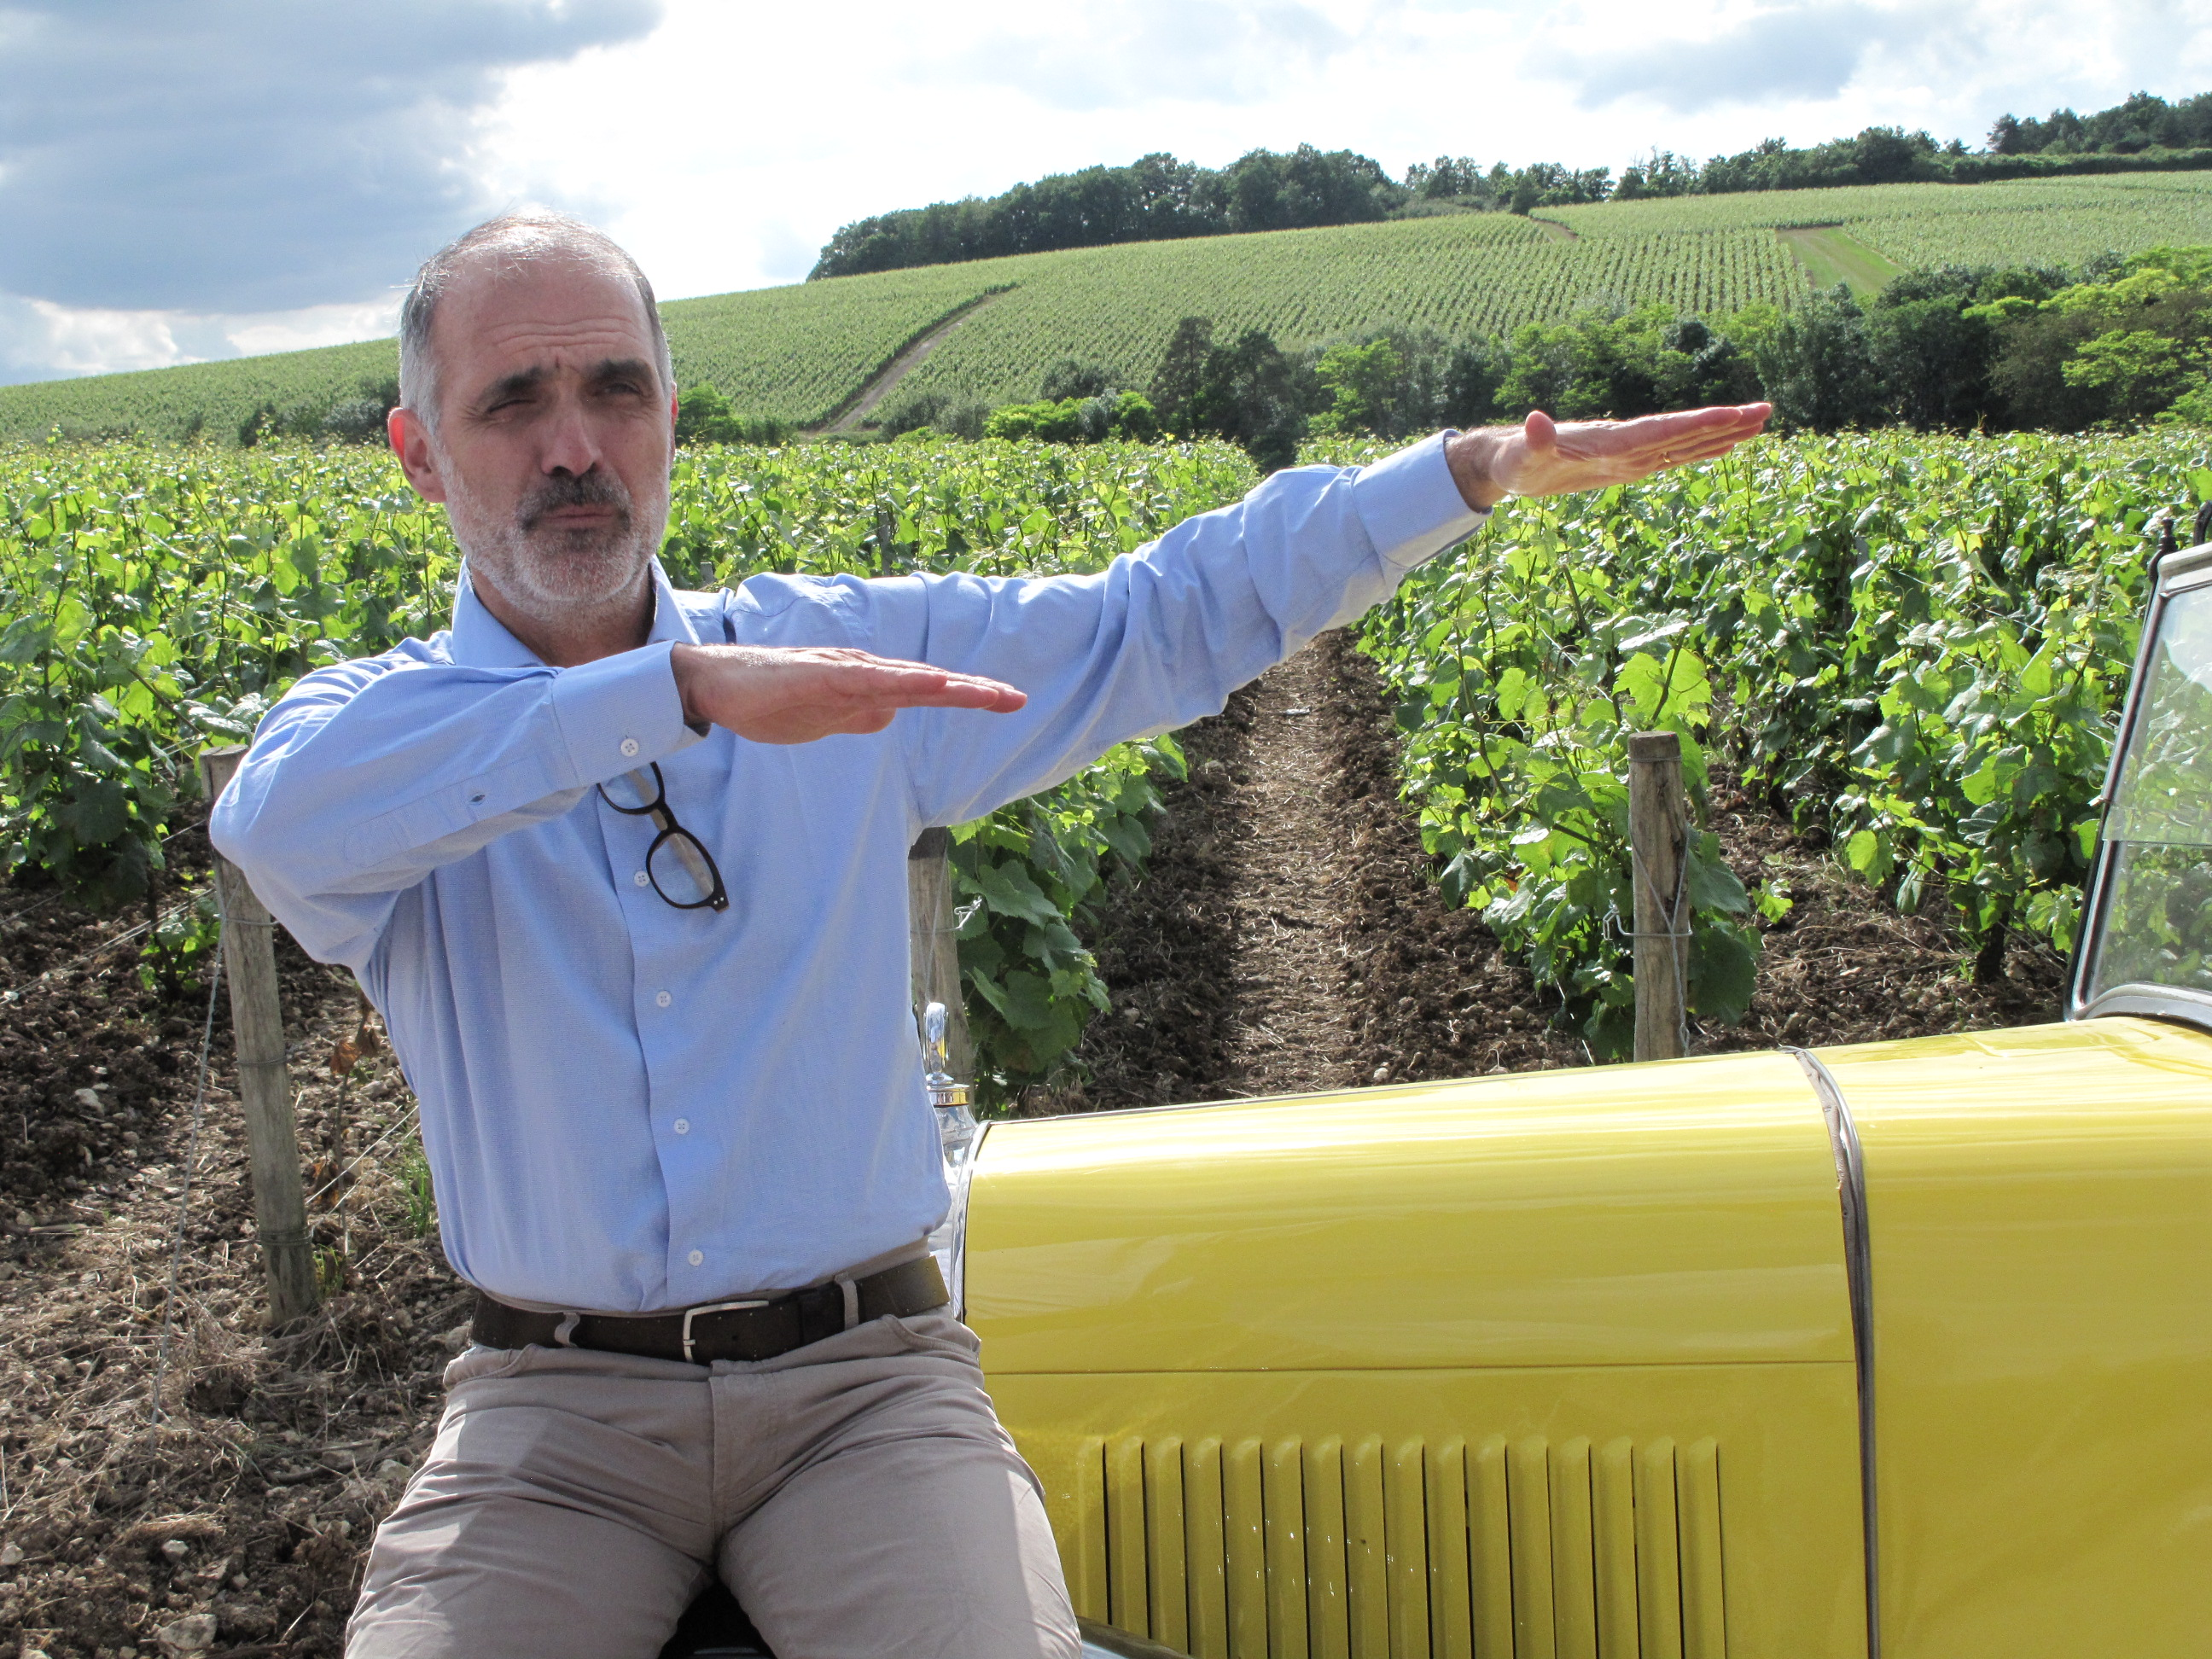 2.2 Michel Drappier in the vineyards